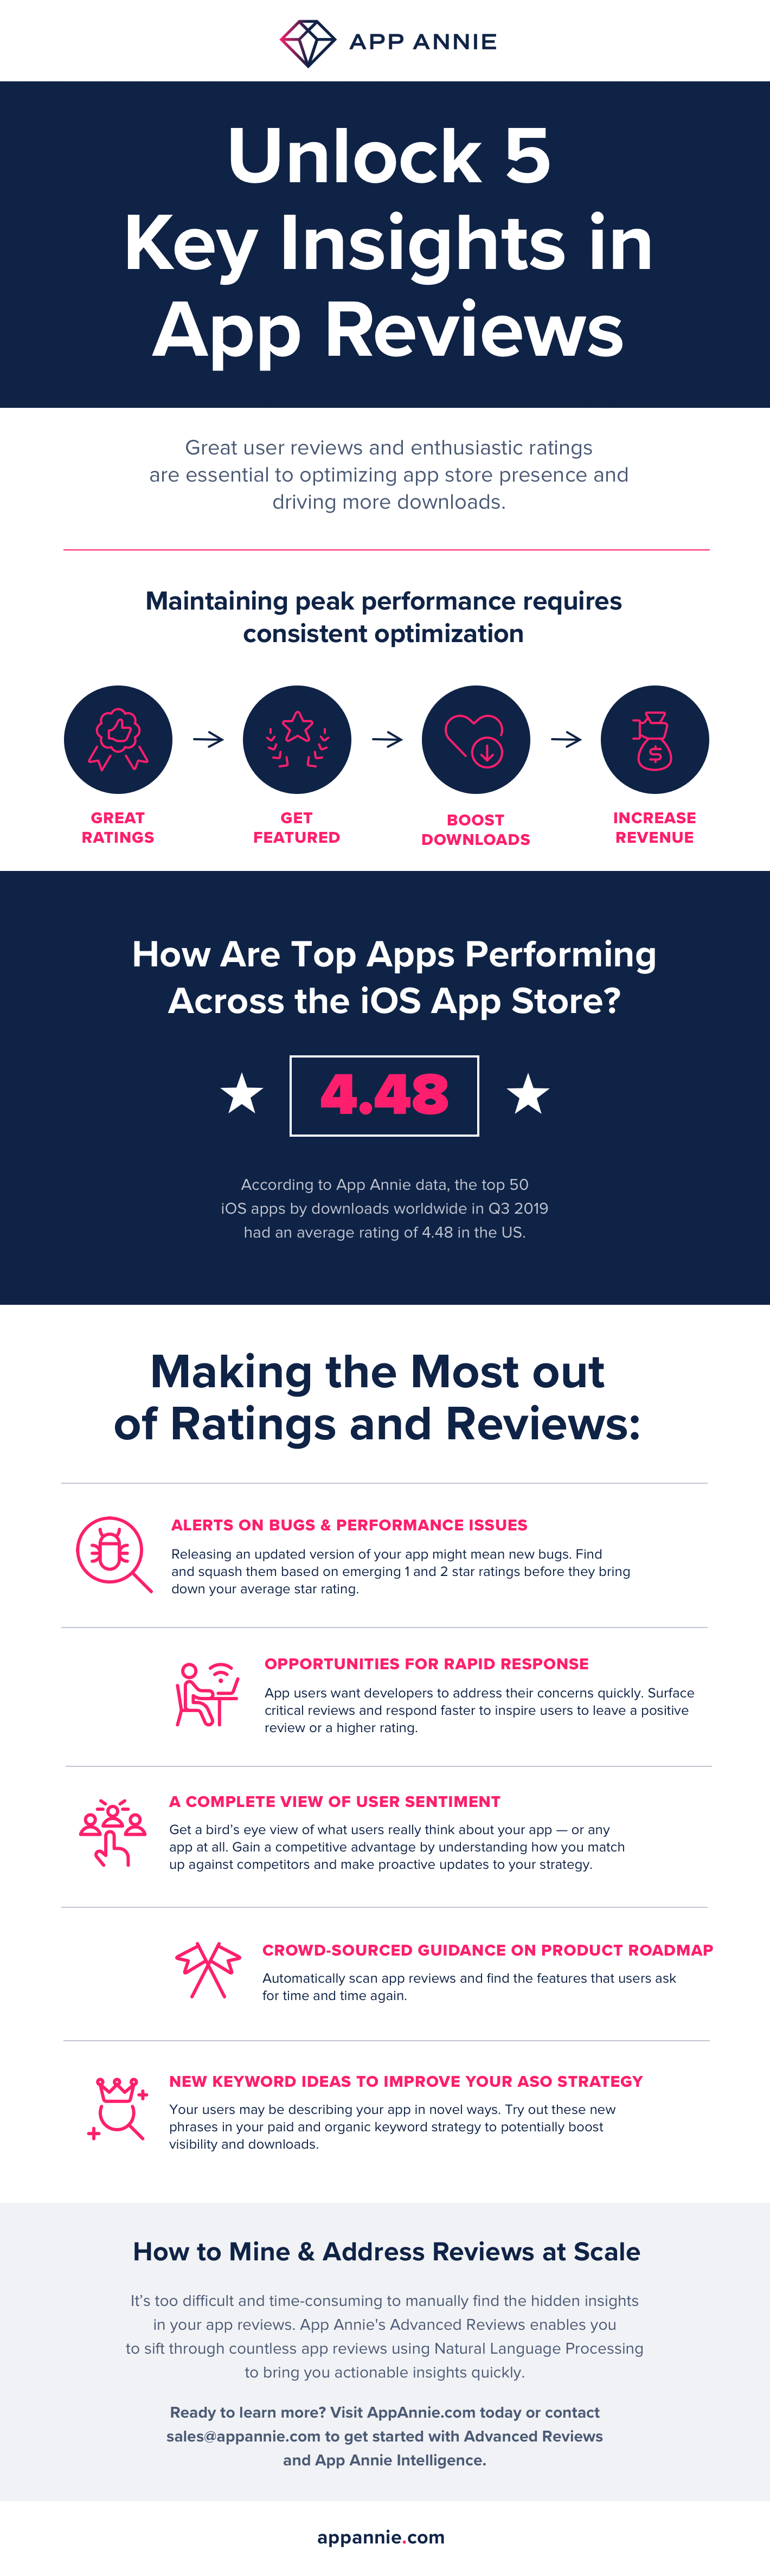 App Annie's Advanced Reviews infographic